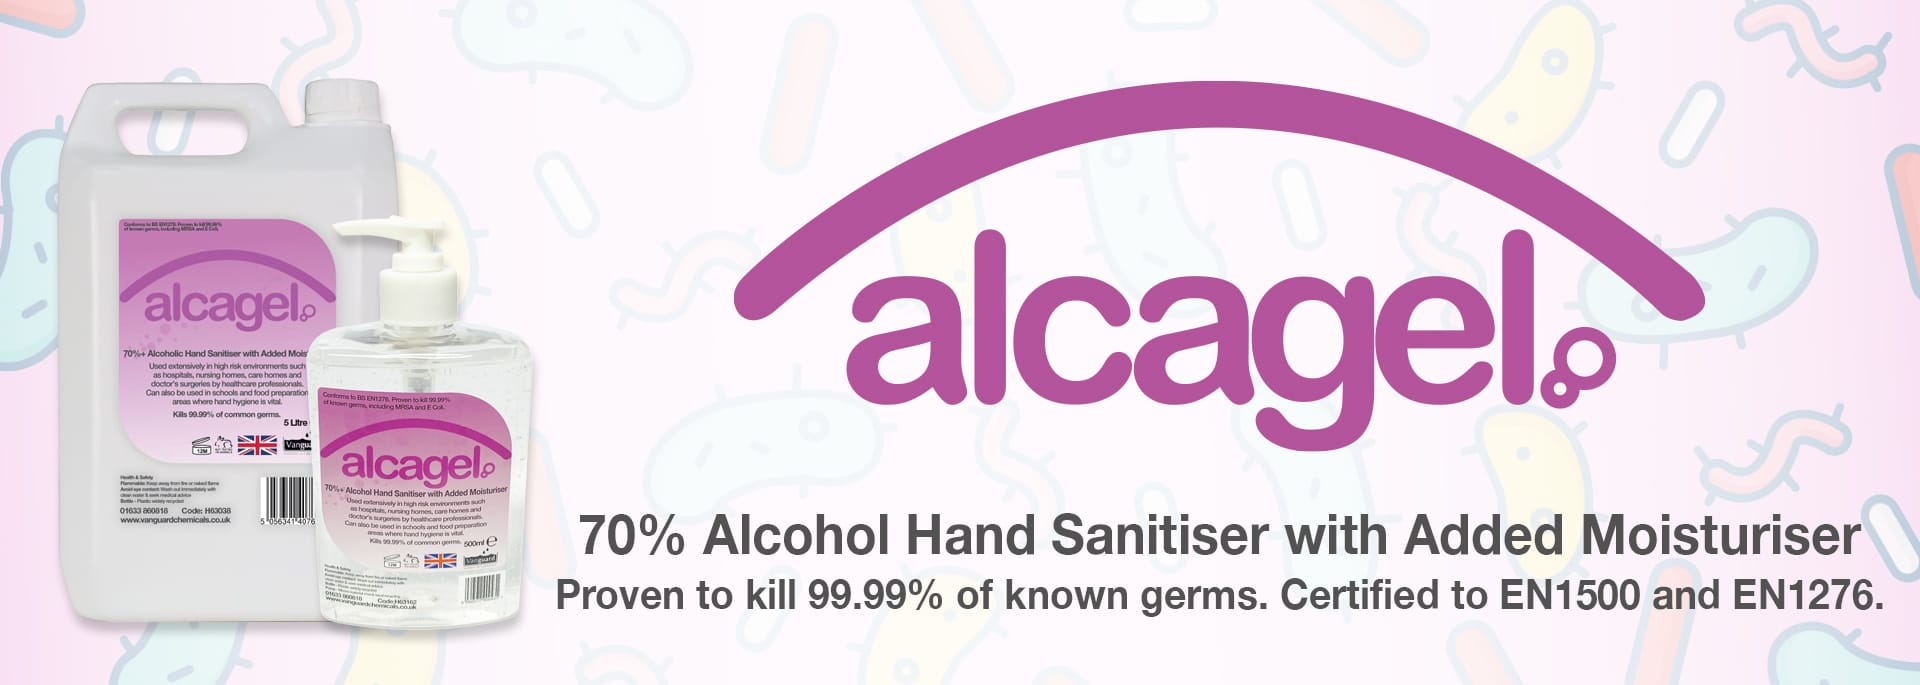 Alcagel - Alcohol Hand Sanitiser